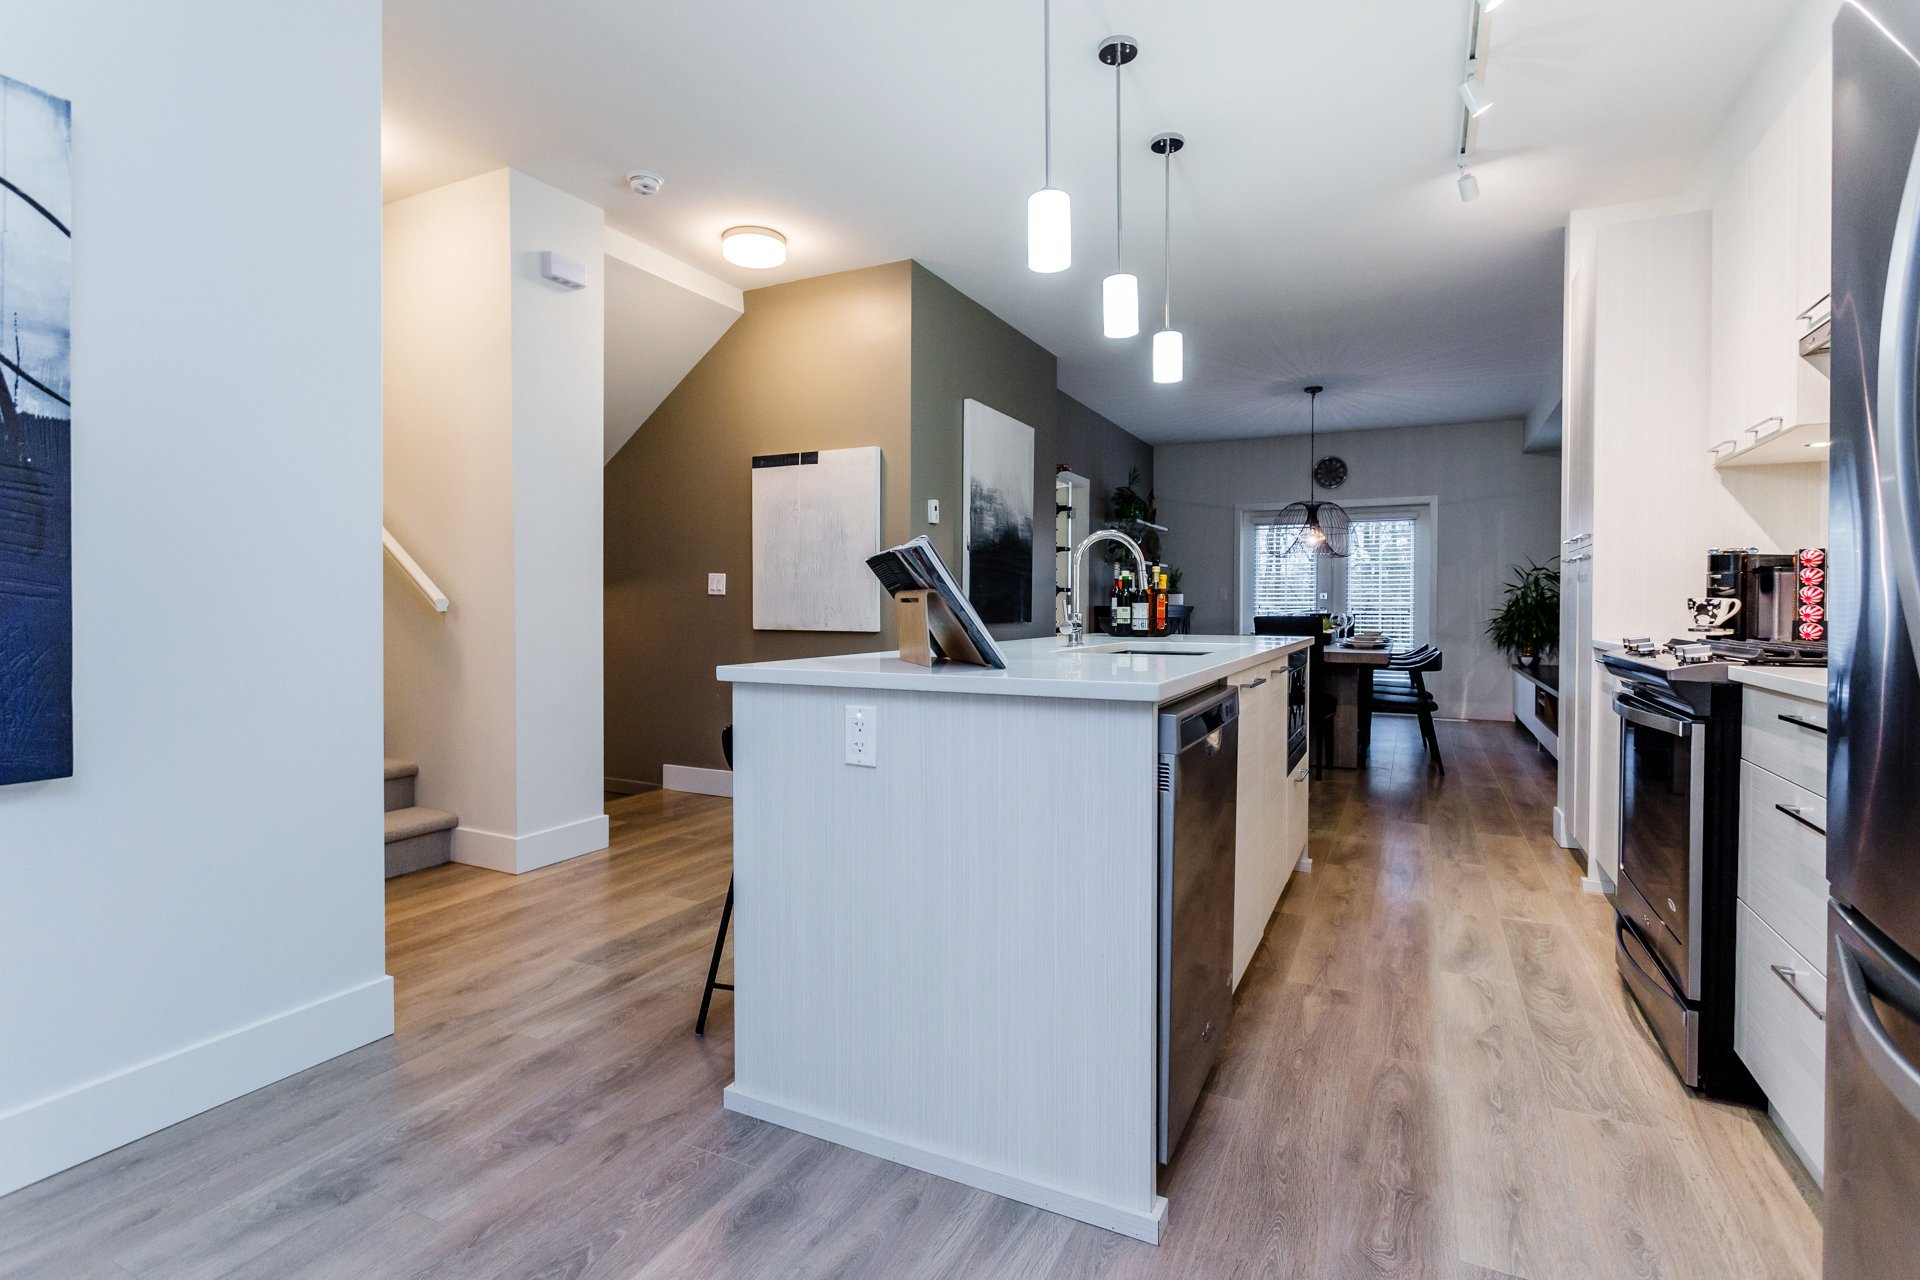 """Photo 12: Photos: 8 8217 204B Street in Langley: Willoughby Heights Townhouse for sale in """"EVERLY GREEN"""" : MLS®# R2236678"""